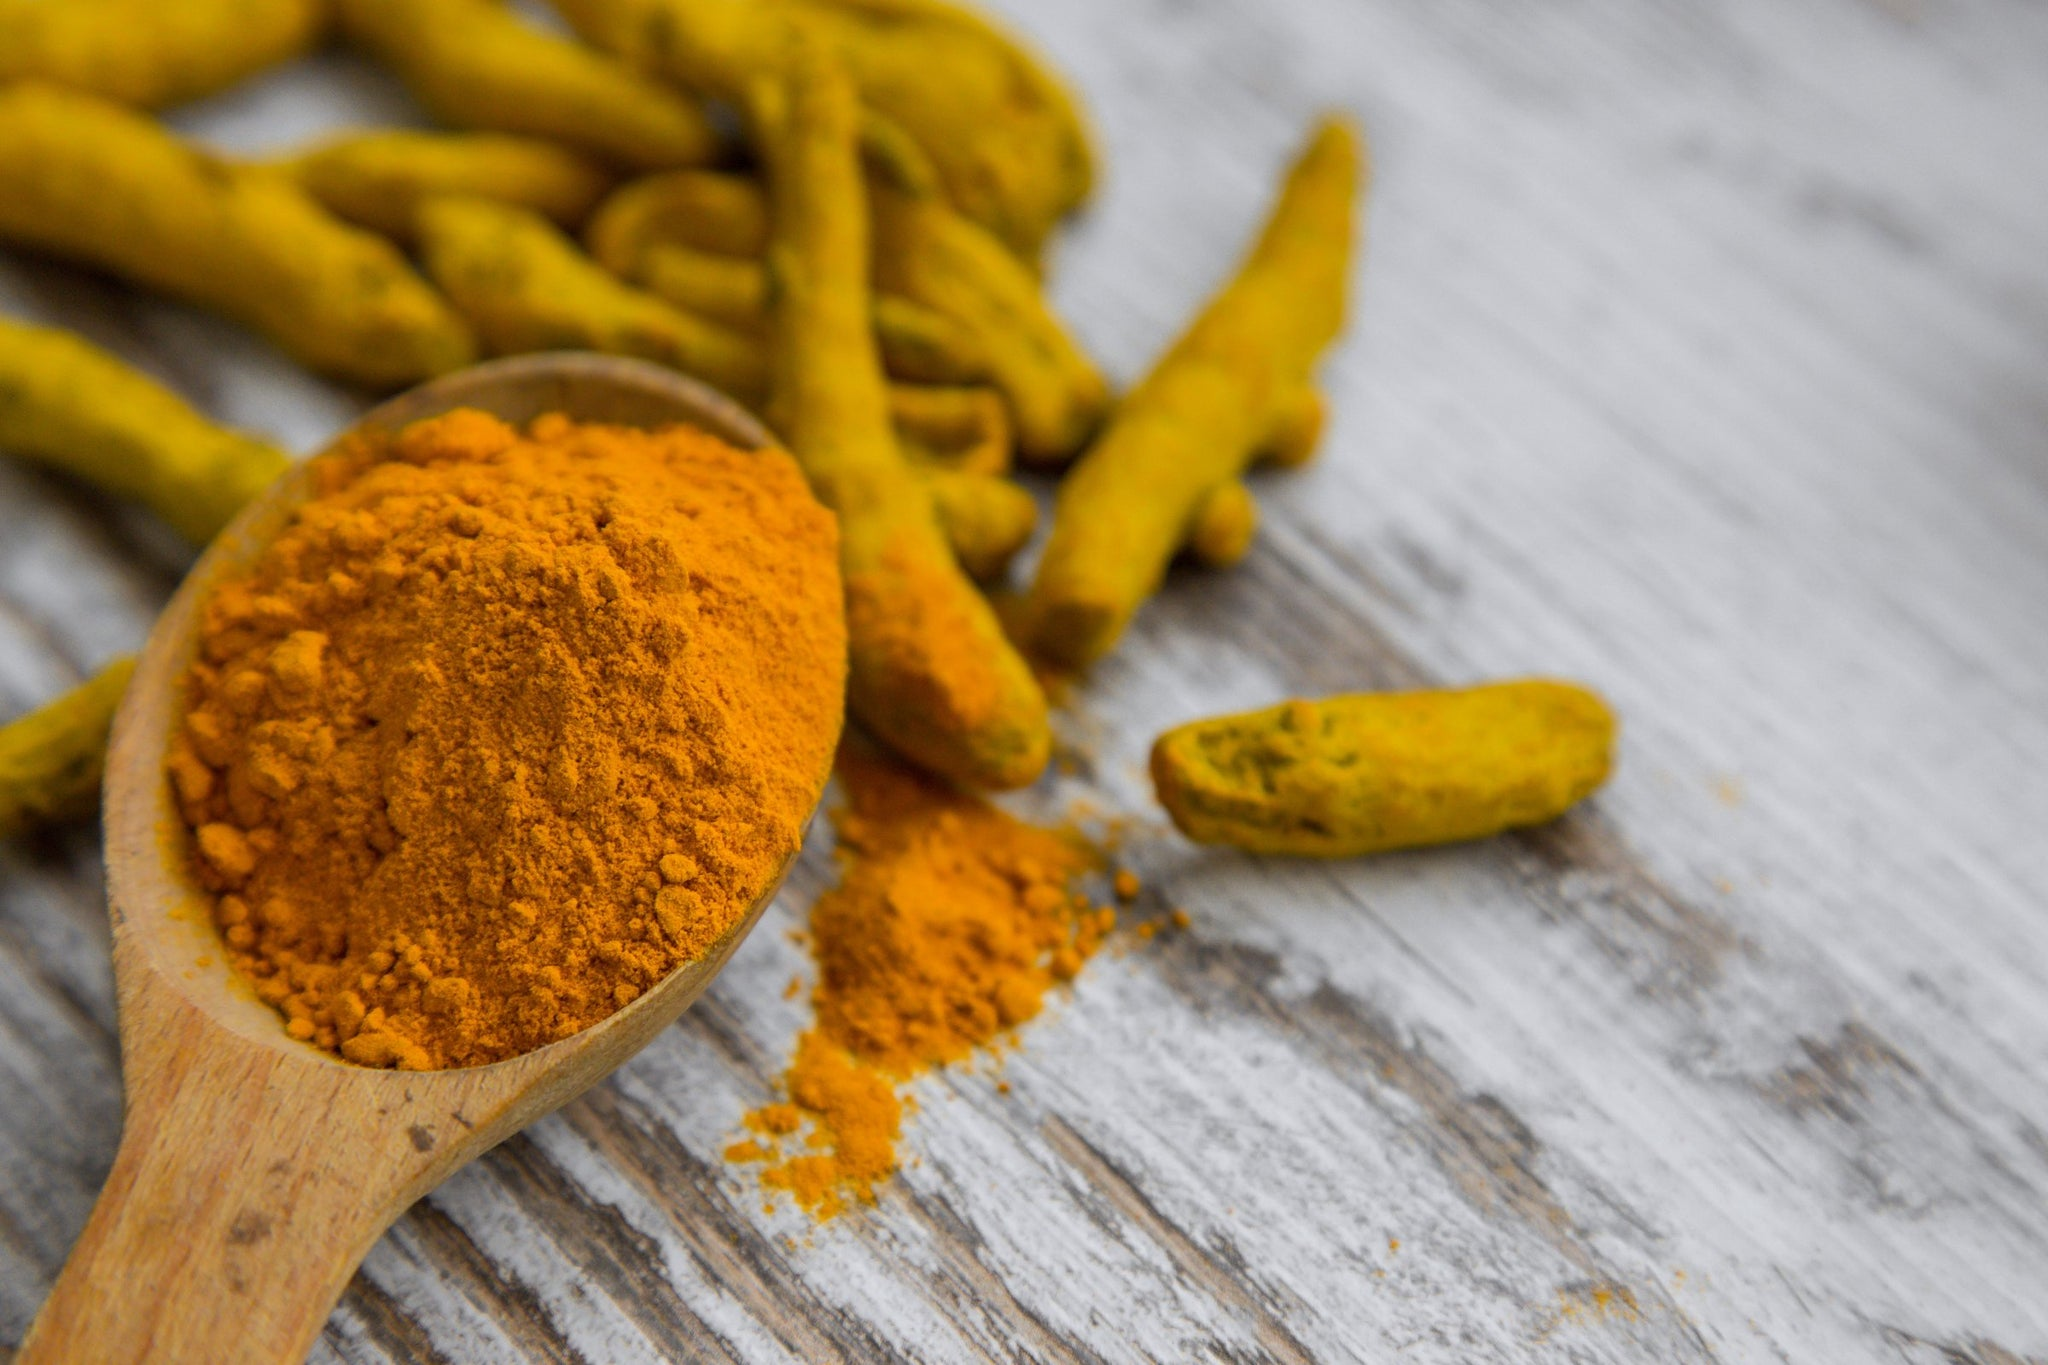 10 Incredible Herbs, Spices and Botanicals to Boost Wellbeing